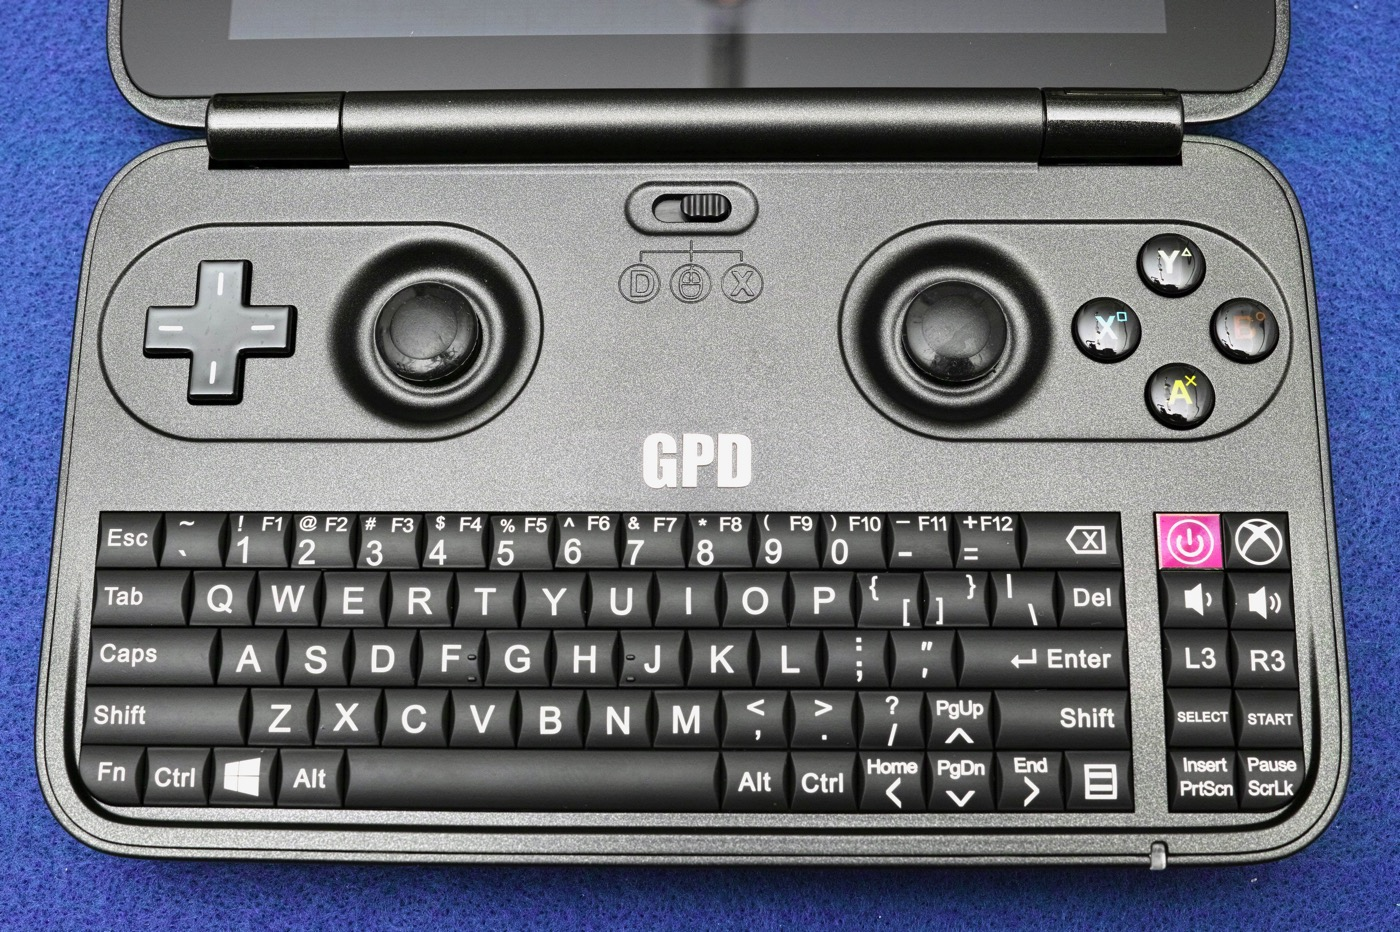 Gpd win related products list 00003